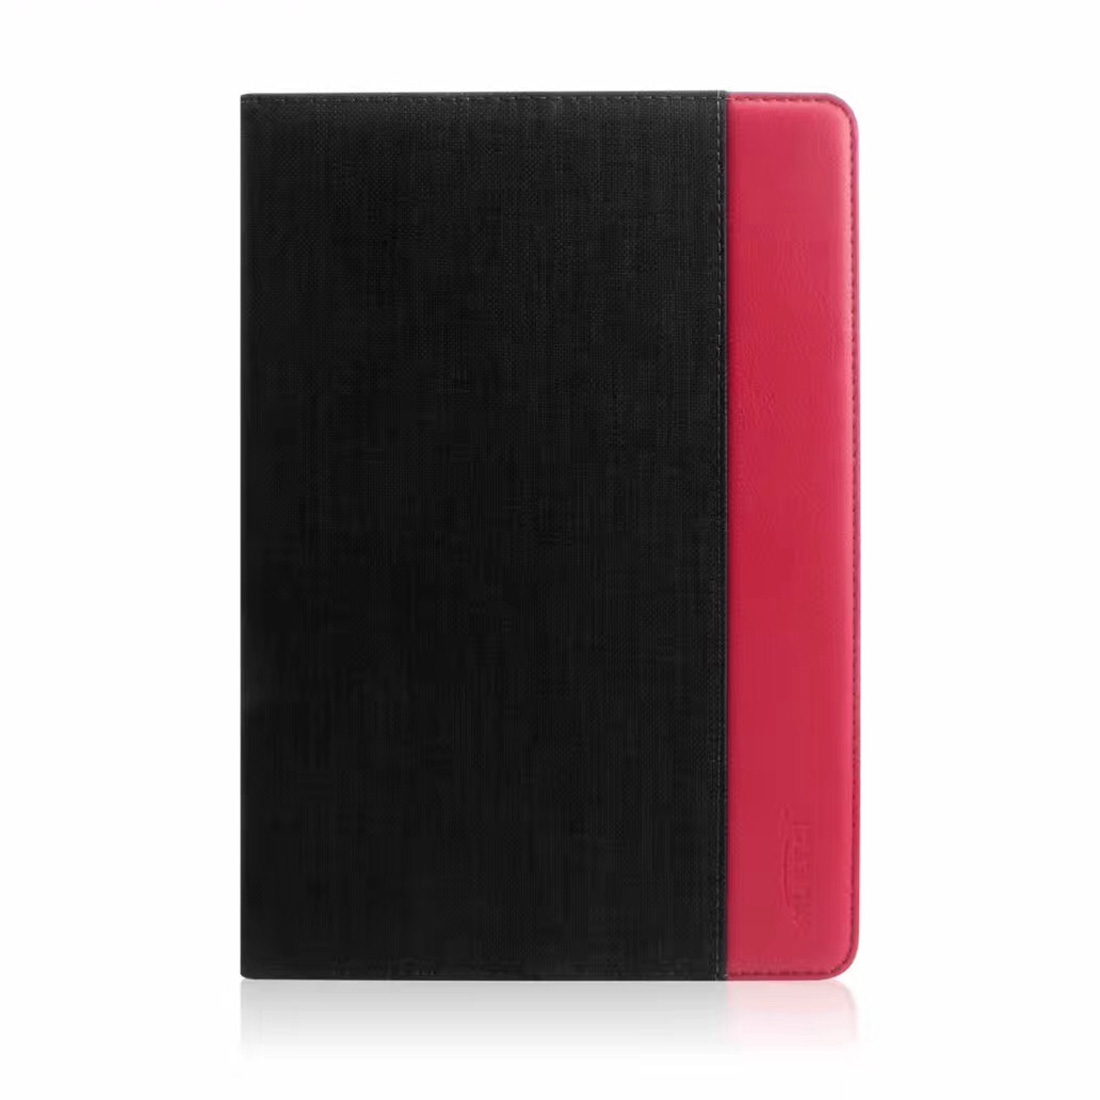 Canvas Leather iPad Air 3 Case (10.5 Inch), with Auto Sleep